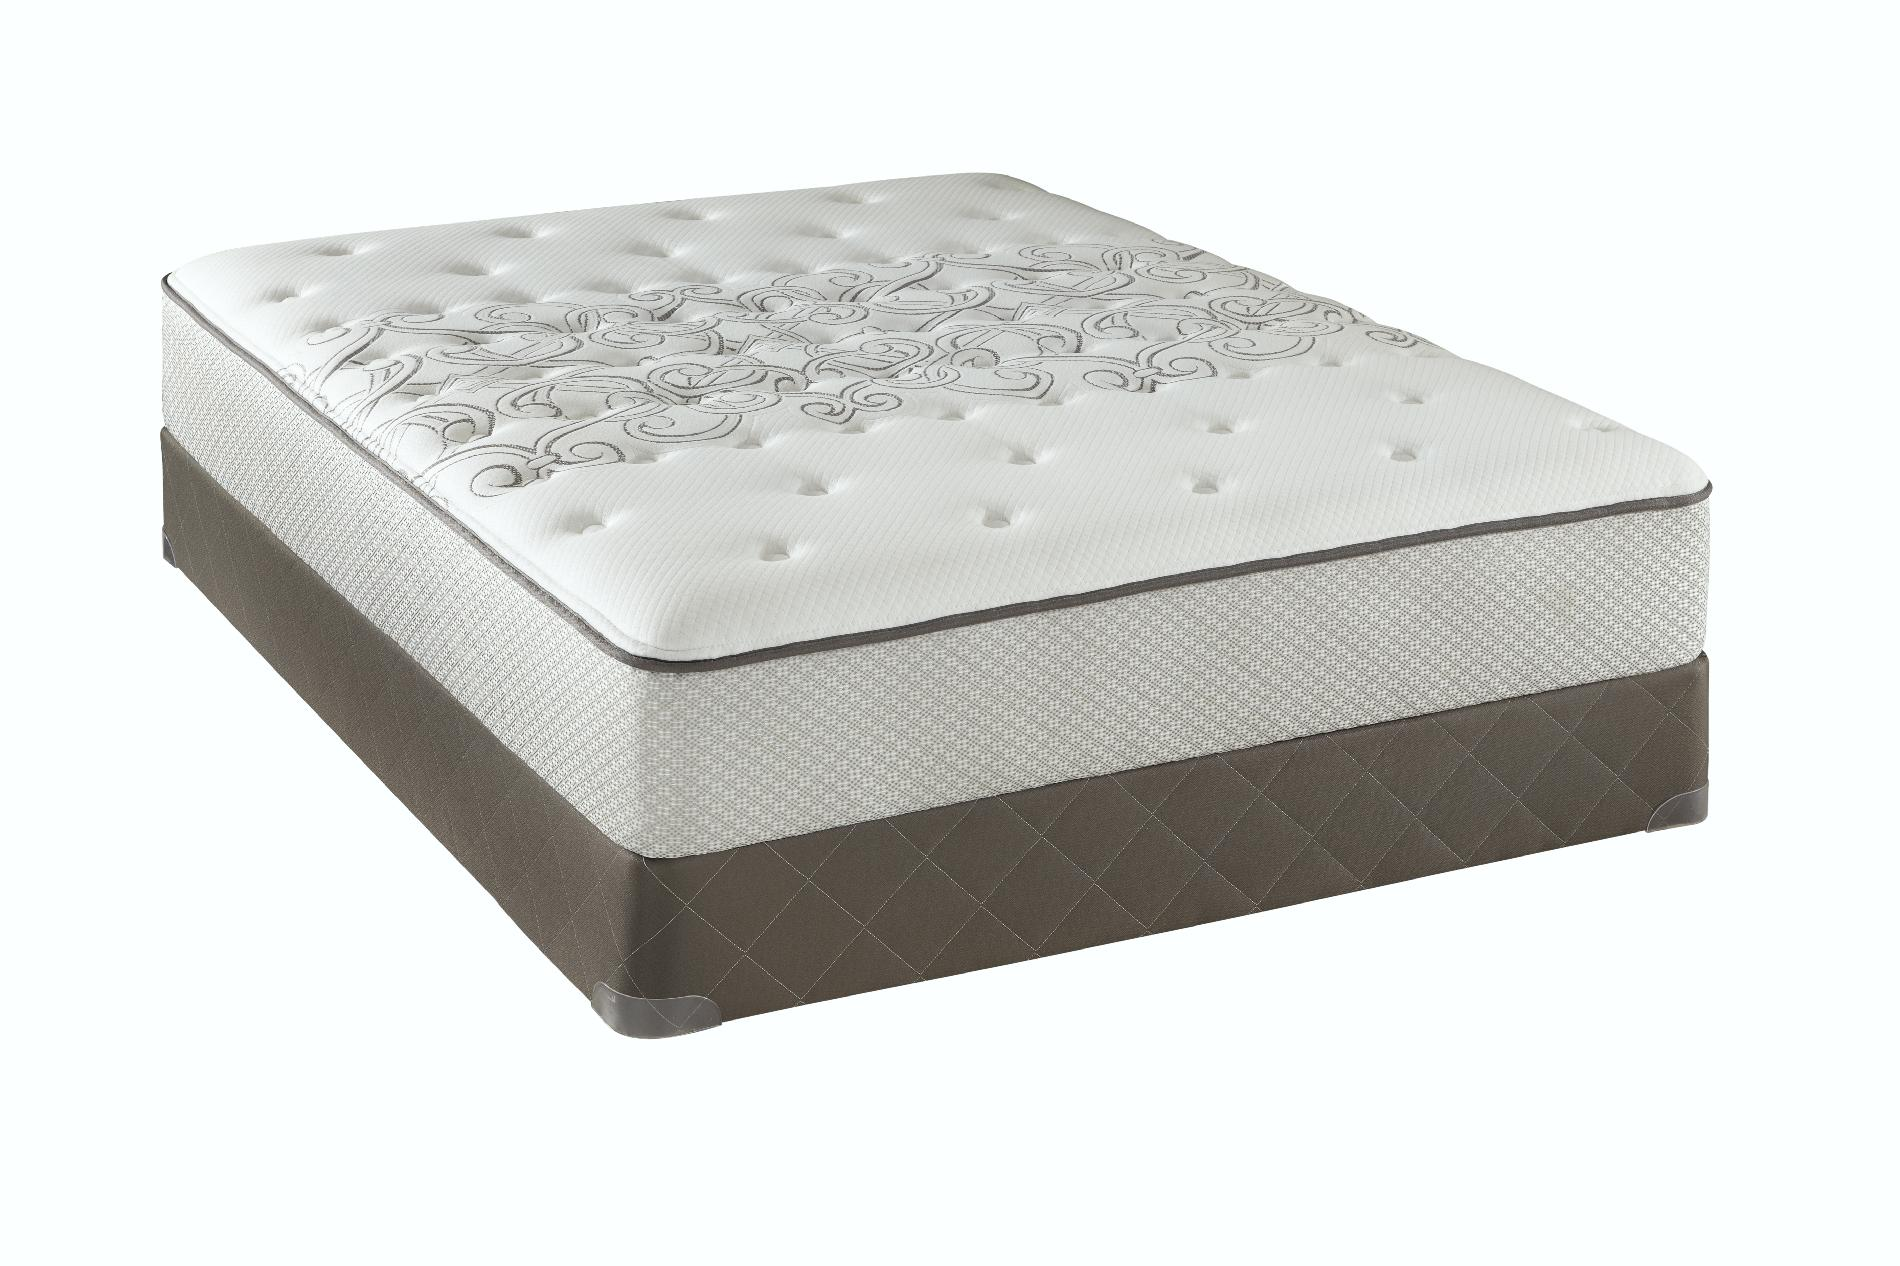 Sealy Posturepedic Cookshire Ti2 II, Firm, Queen Mattress Only